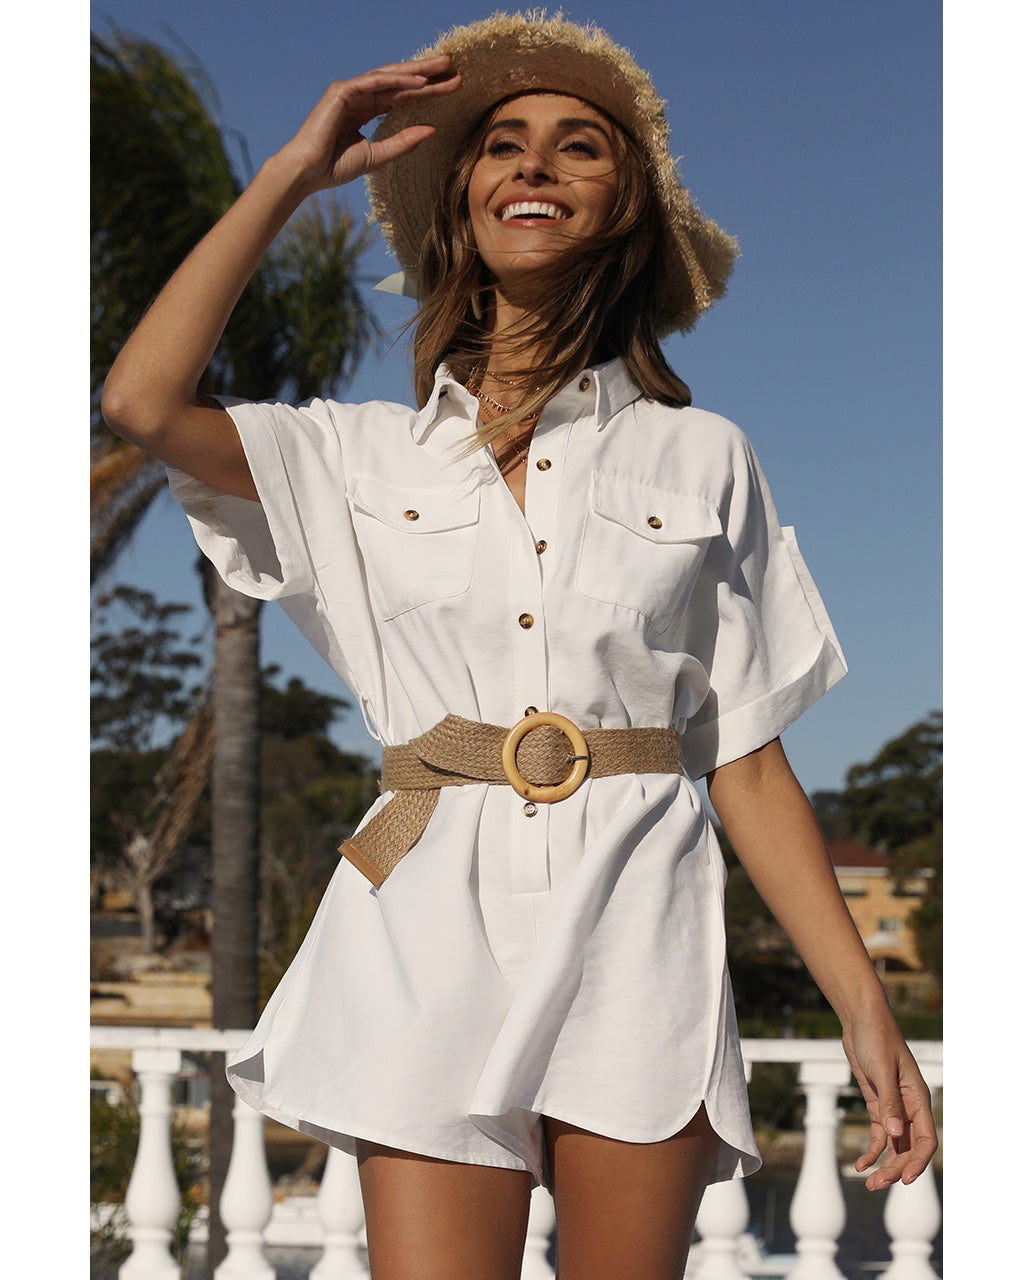 HIRE RUNAWAY WHITE SHIRT STYLE PLAYSUIT 3